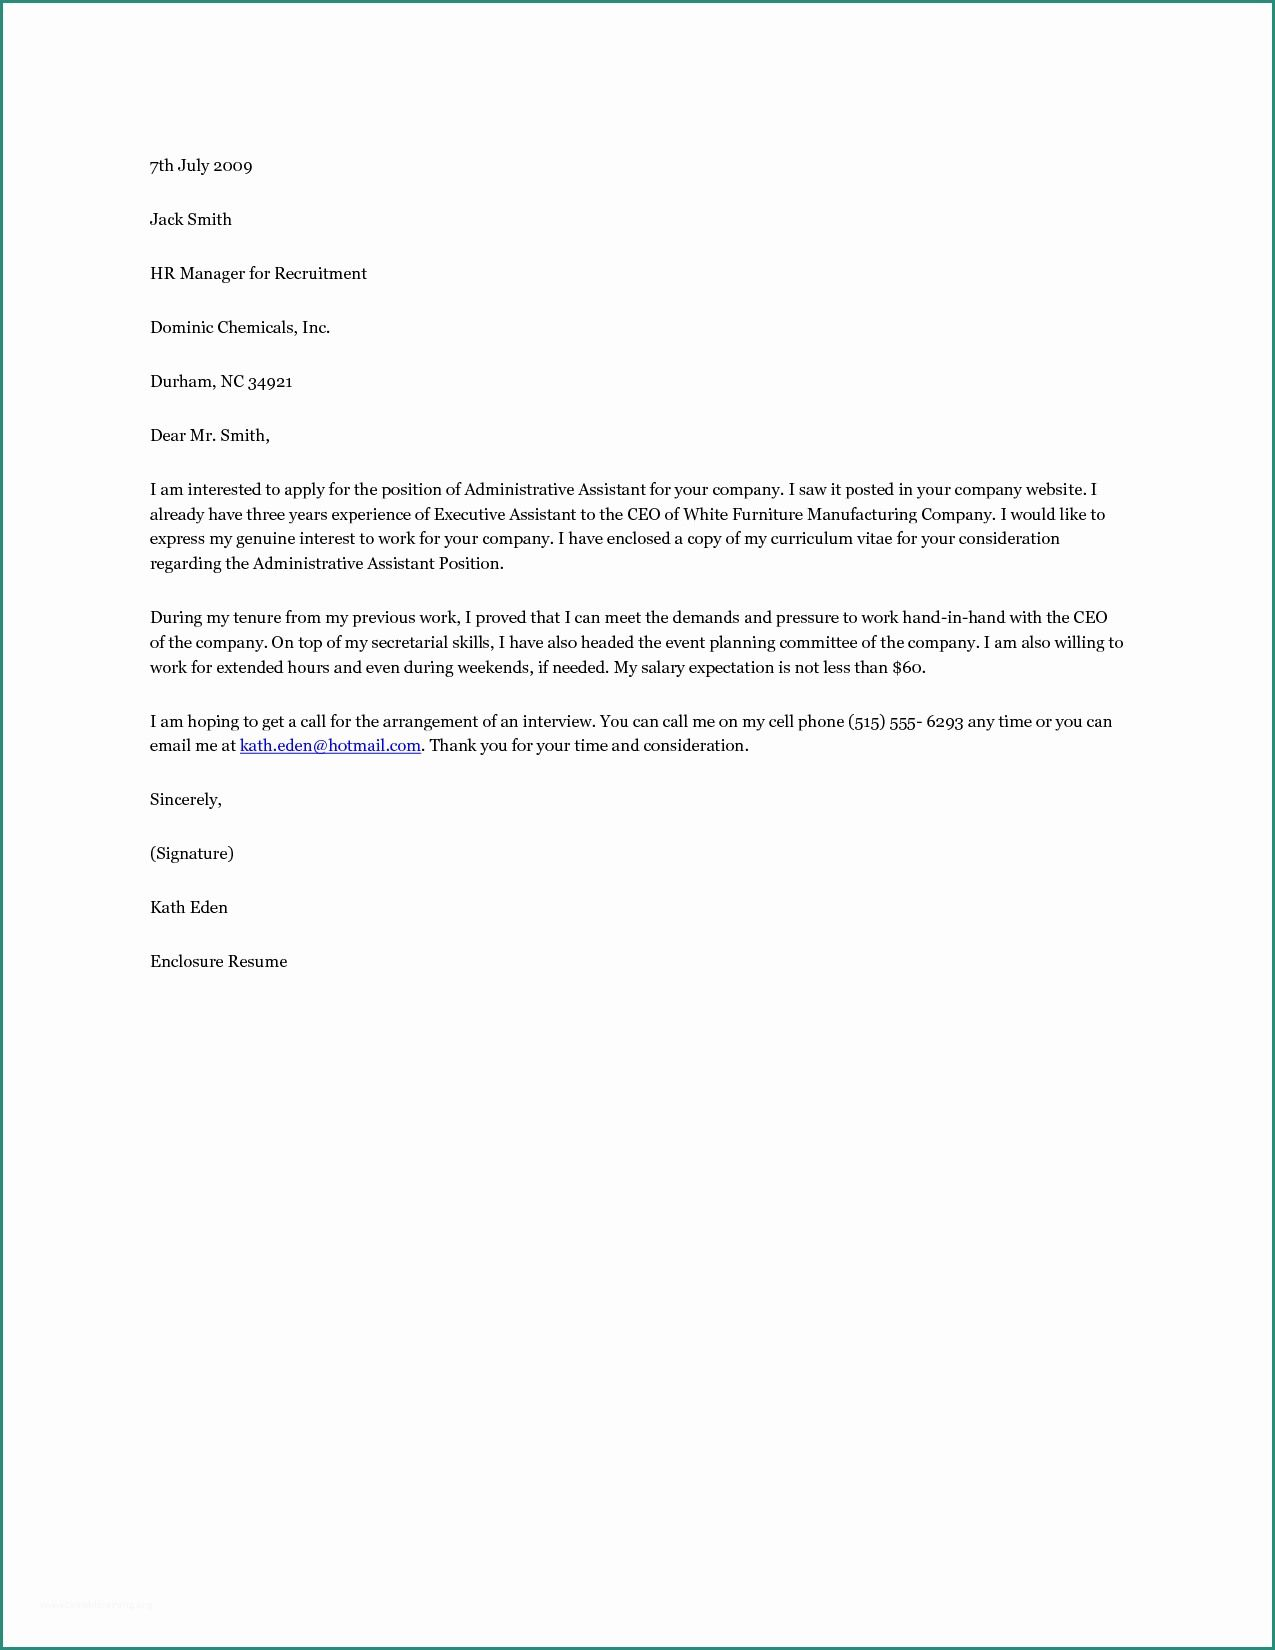 27 Administrative Assistant Cover Letter Examples Cover Letter For Resume Administrative Assistant Cover Letter Job Cover Letter